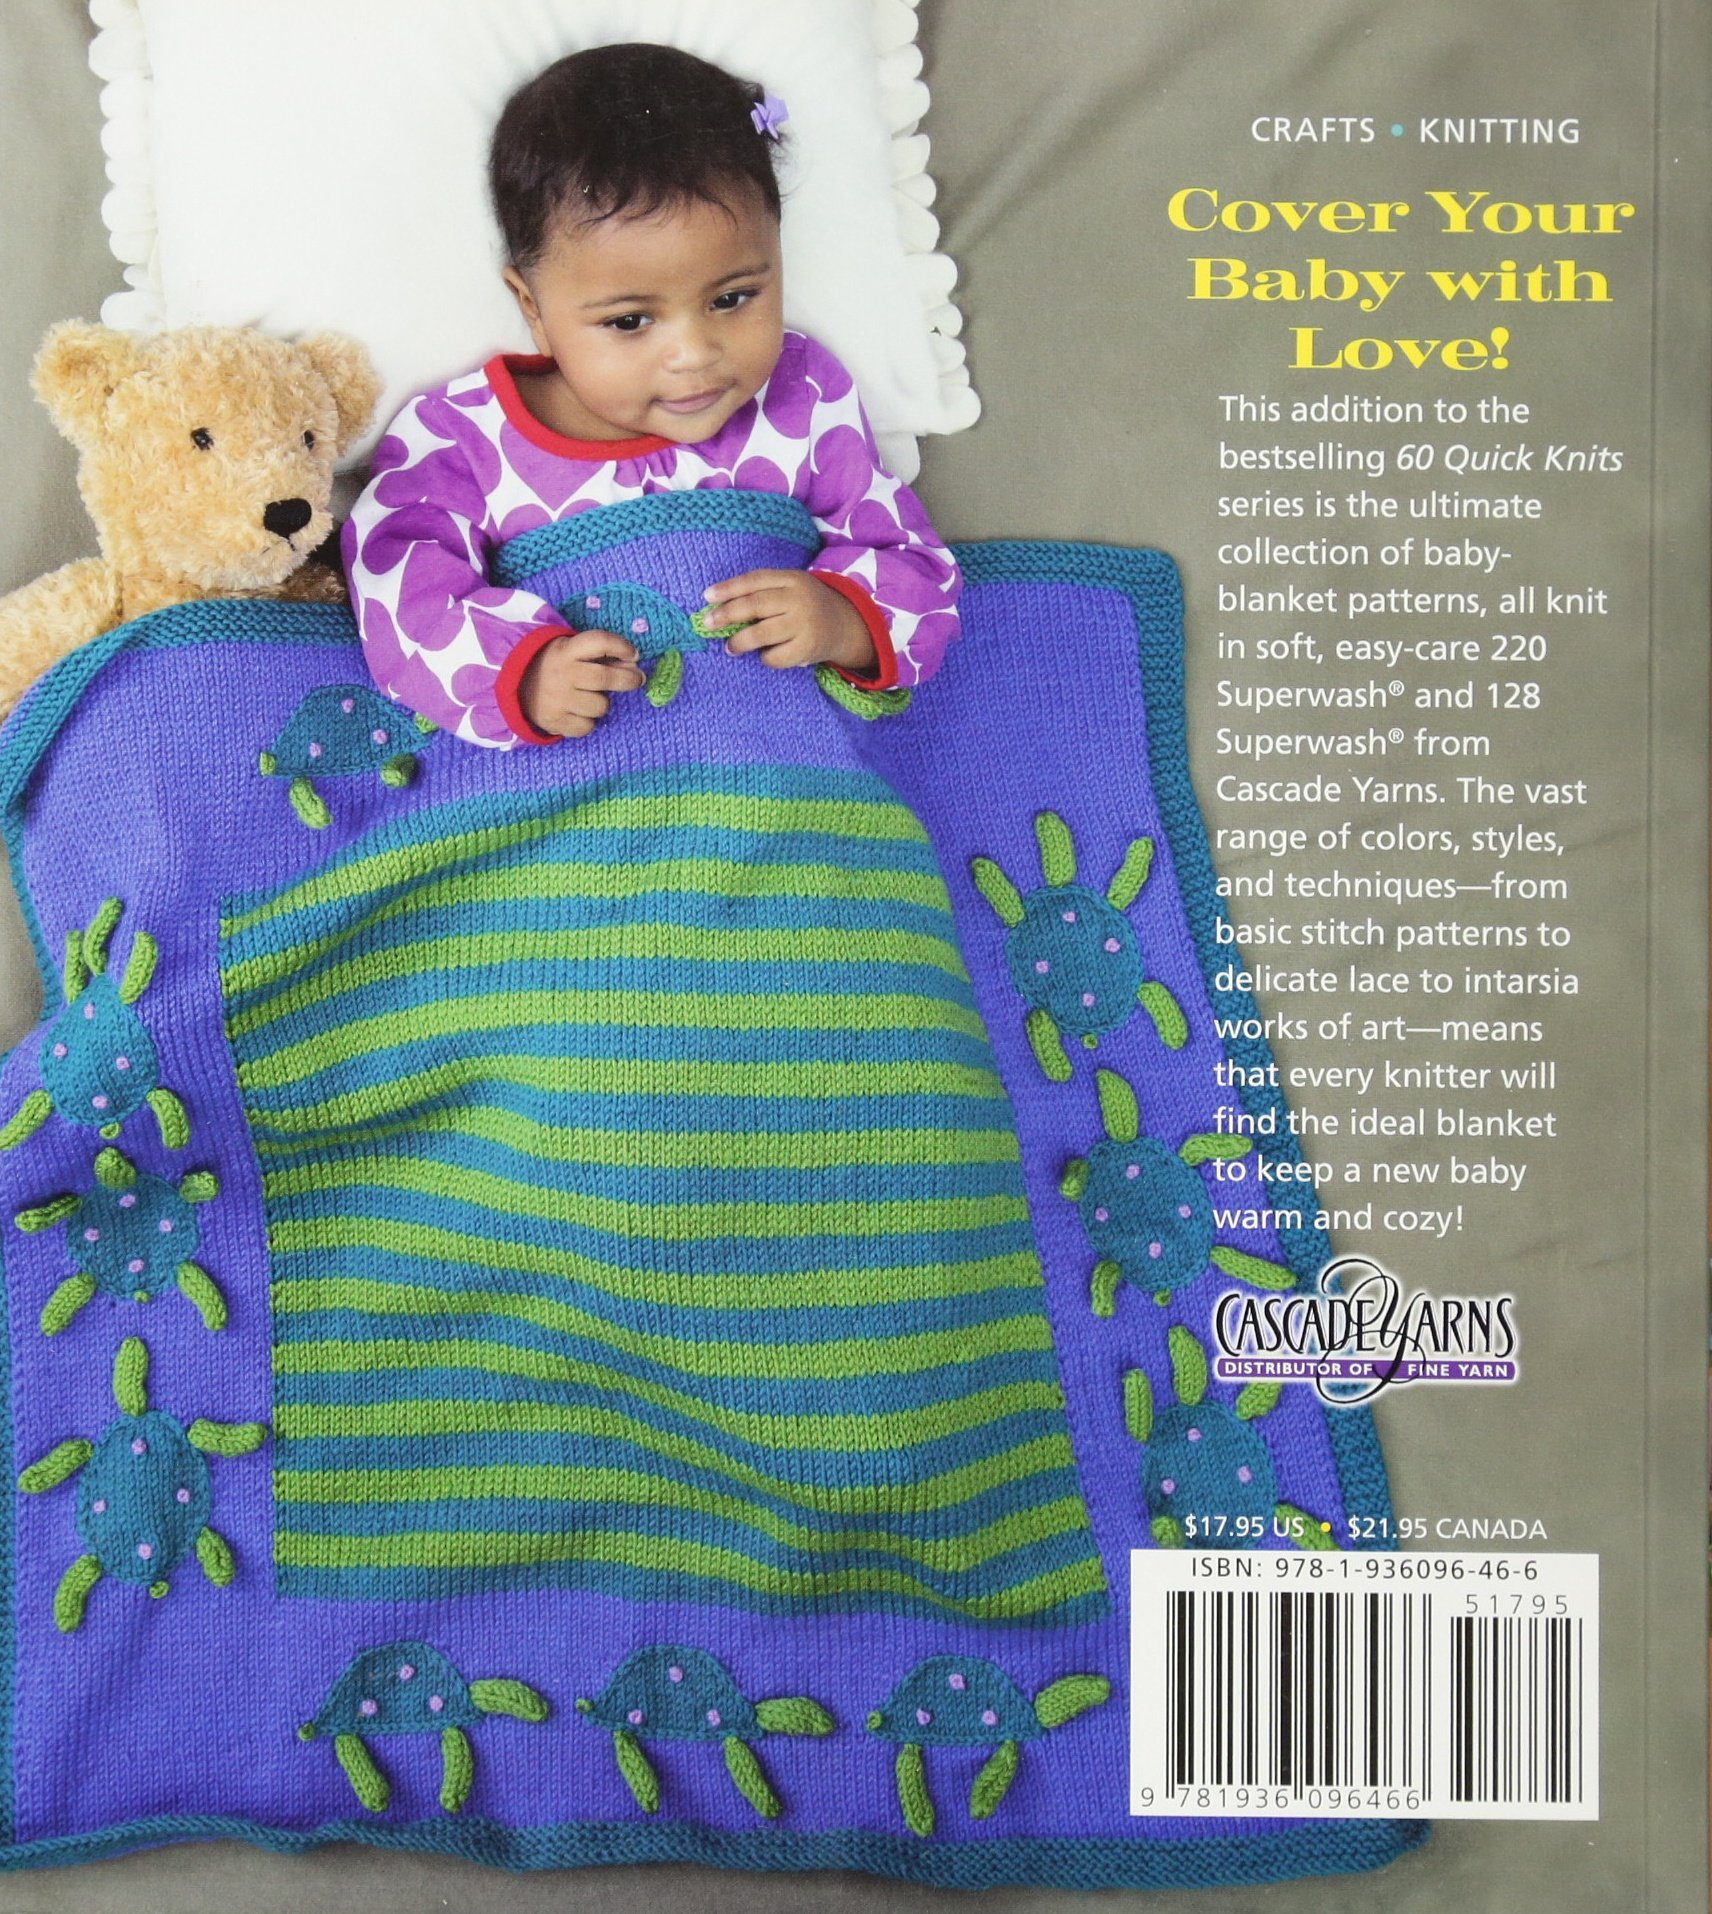 60 Quick Baby Blankets Cute Cuddly Knits In 220 Superwash And